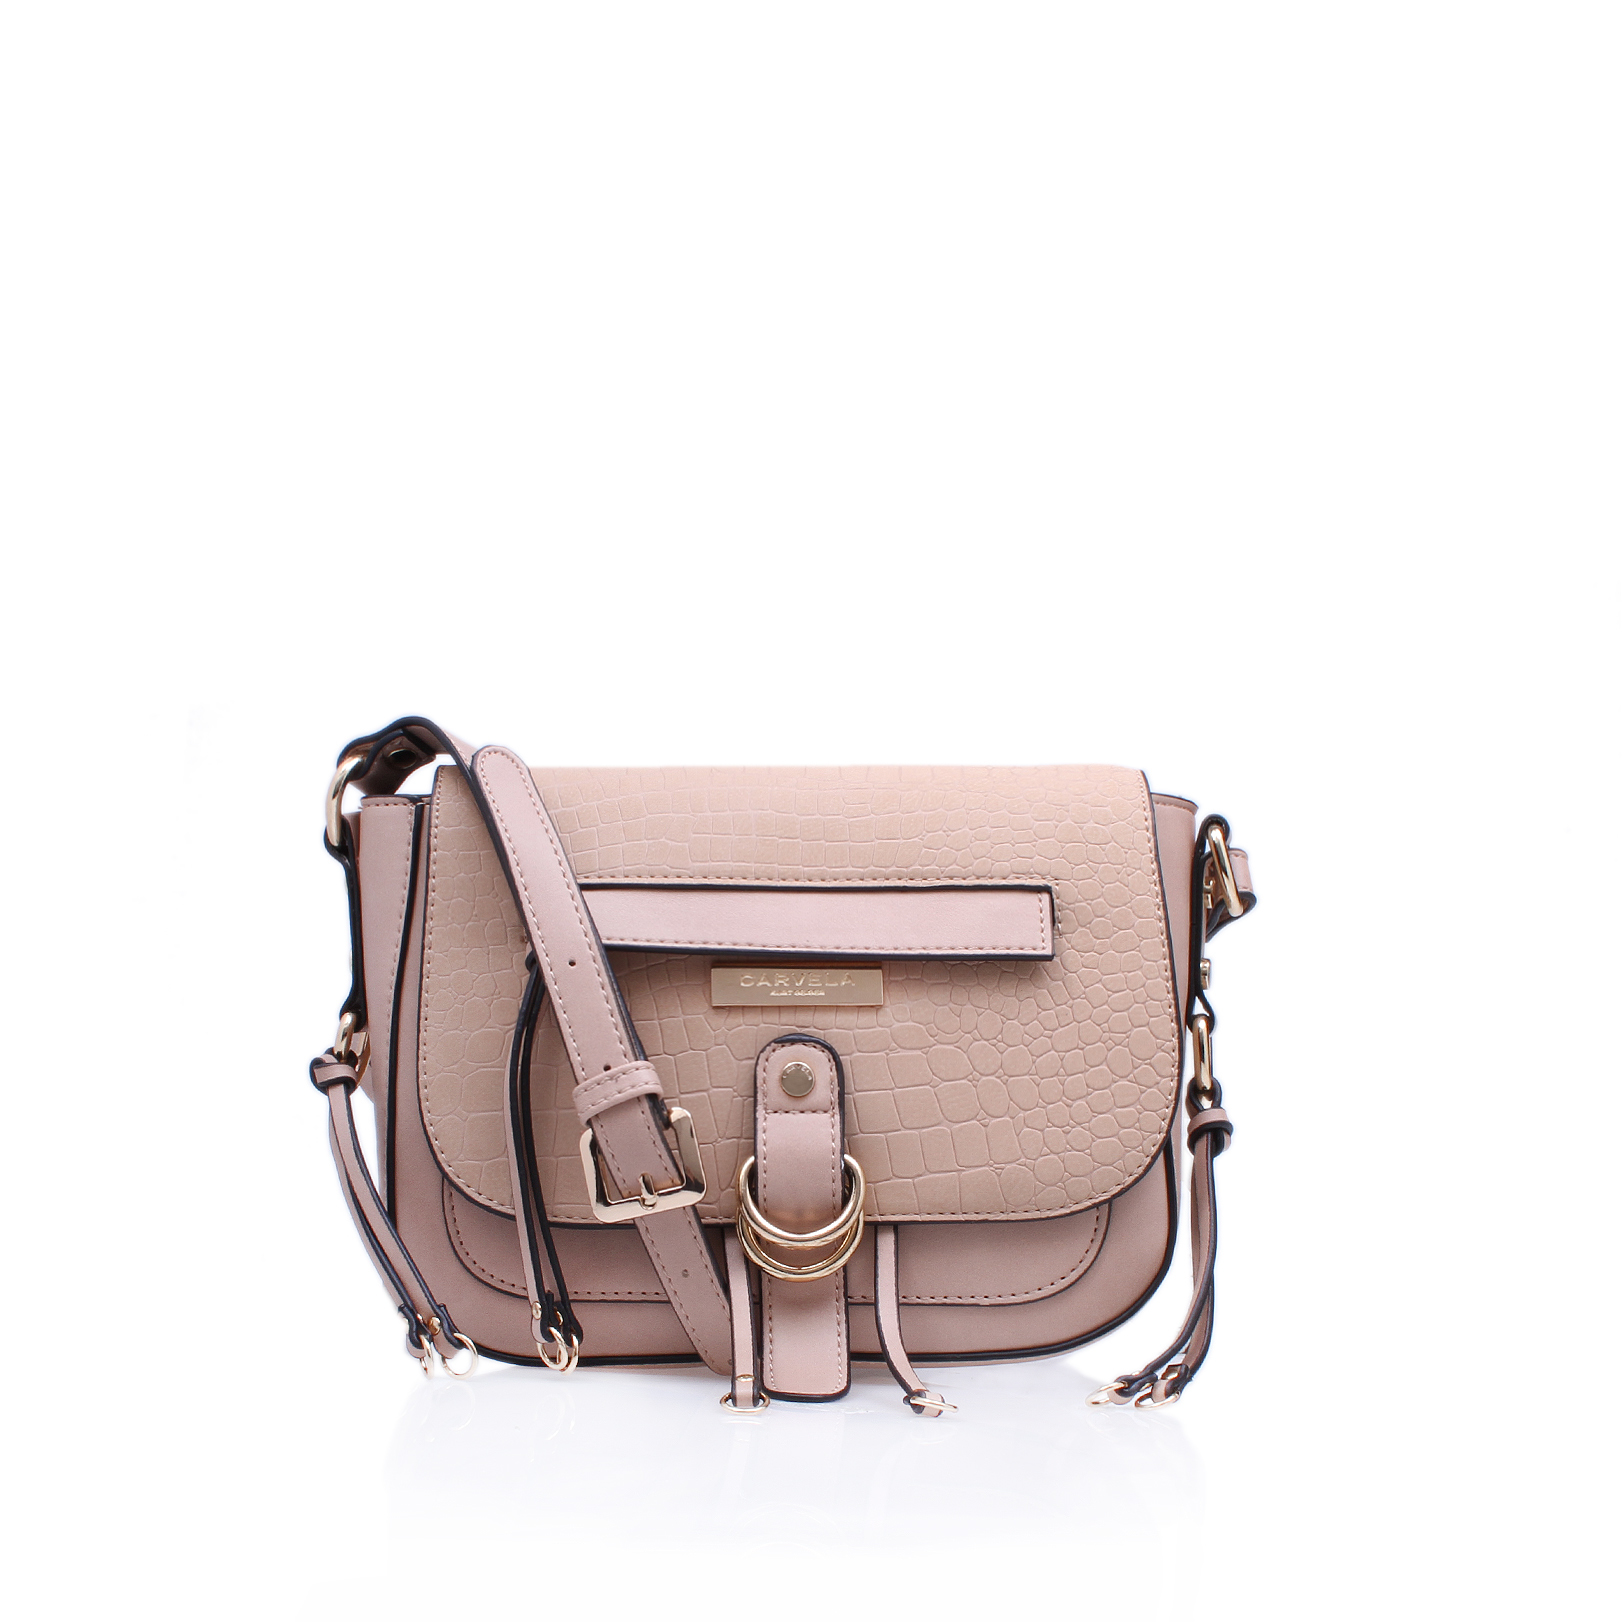 ORLA SADDLE XBODY BAG